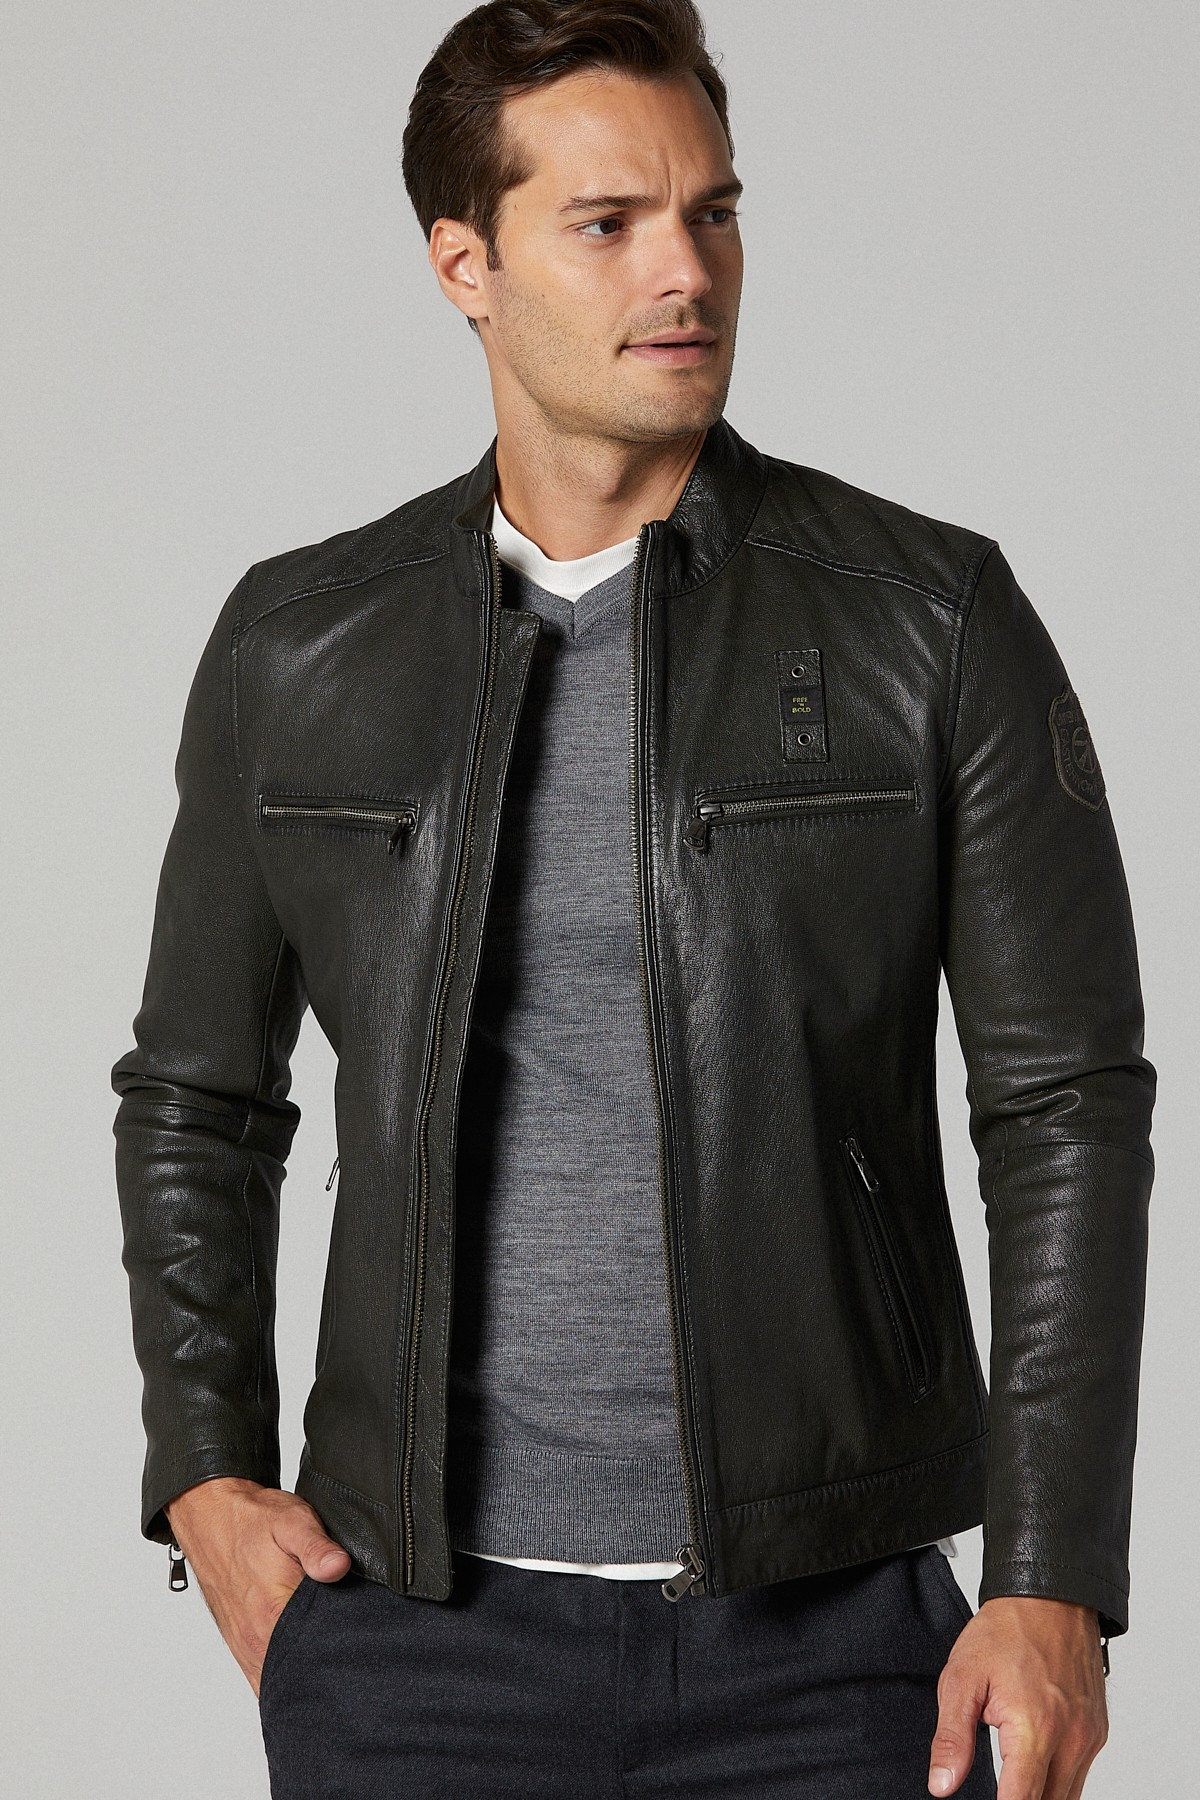 Where Can I Buy Leather Jackets